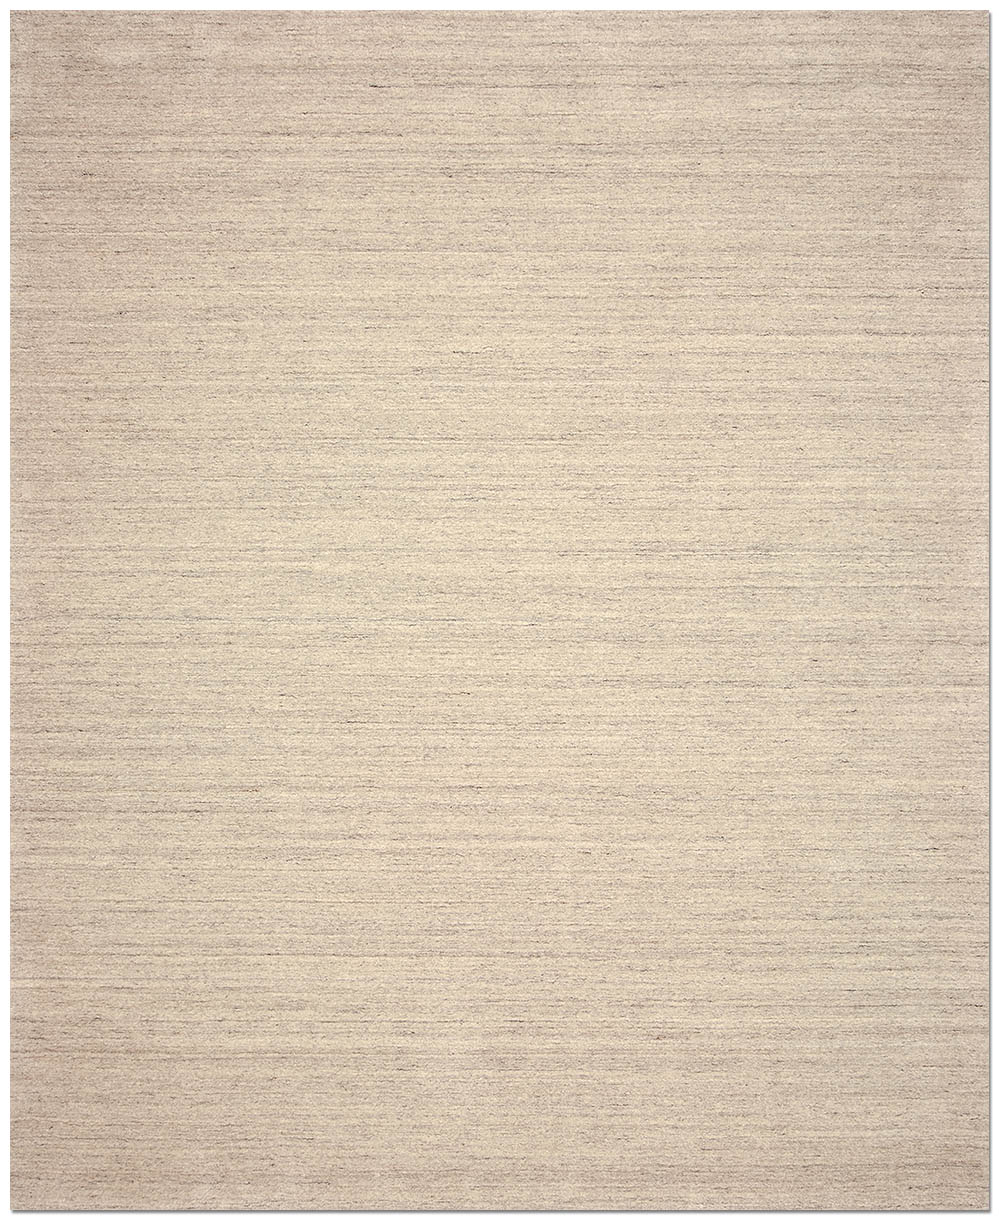 Plain Zebrano area rug